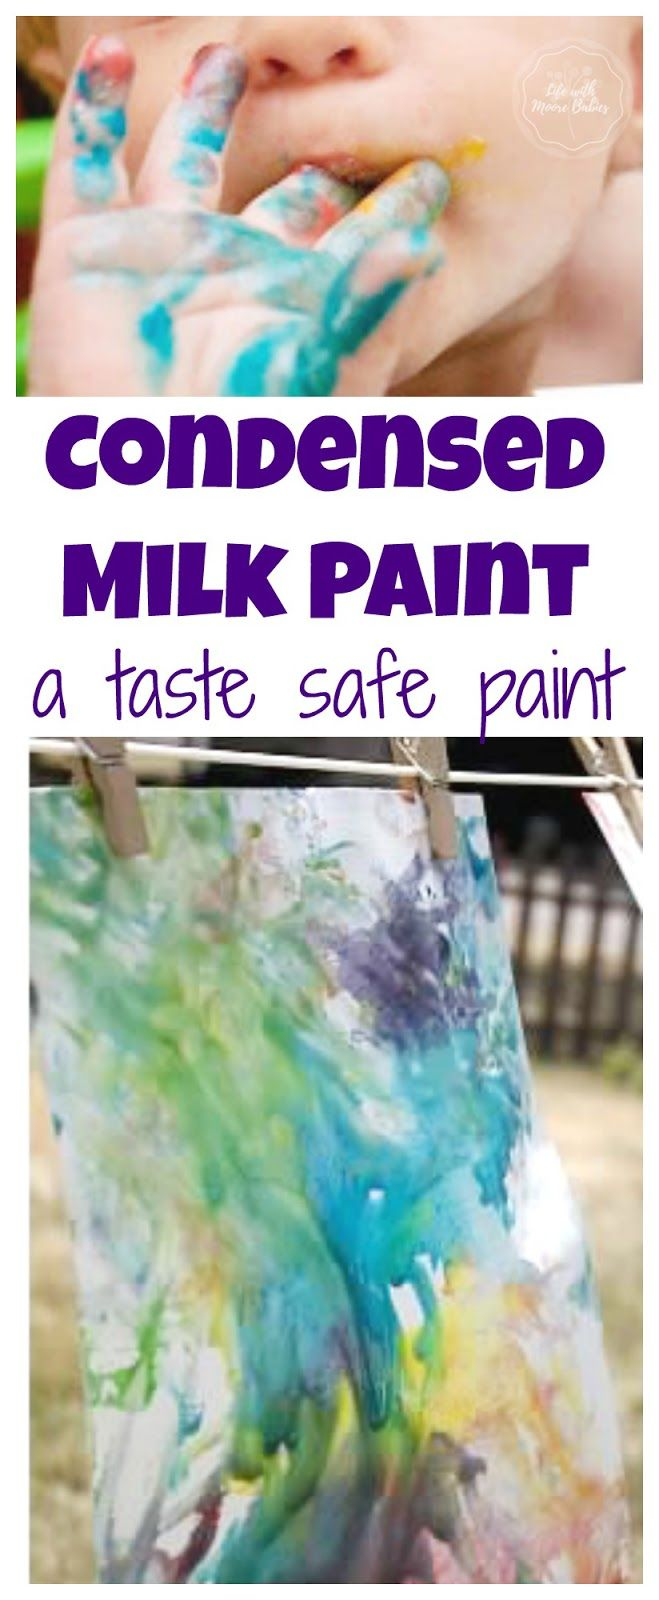 Taste safe art for kids of all ages using condensed milk! Creates a lovely, shiny effect when dry.